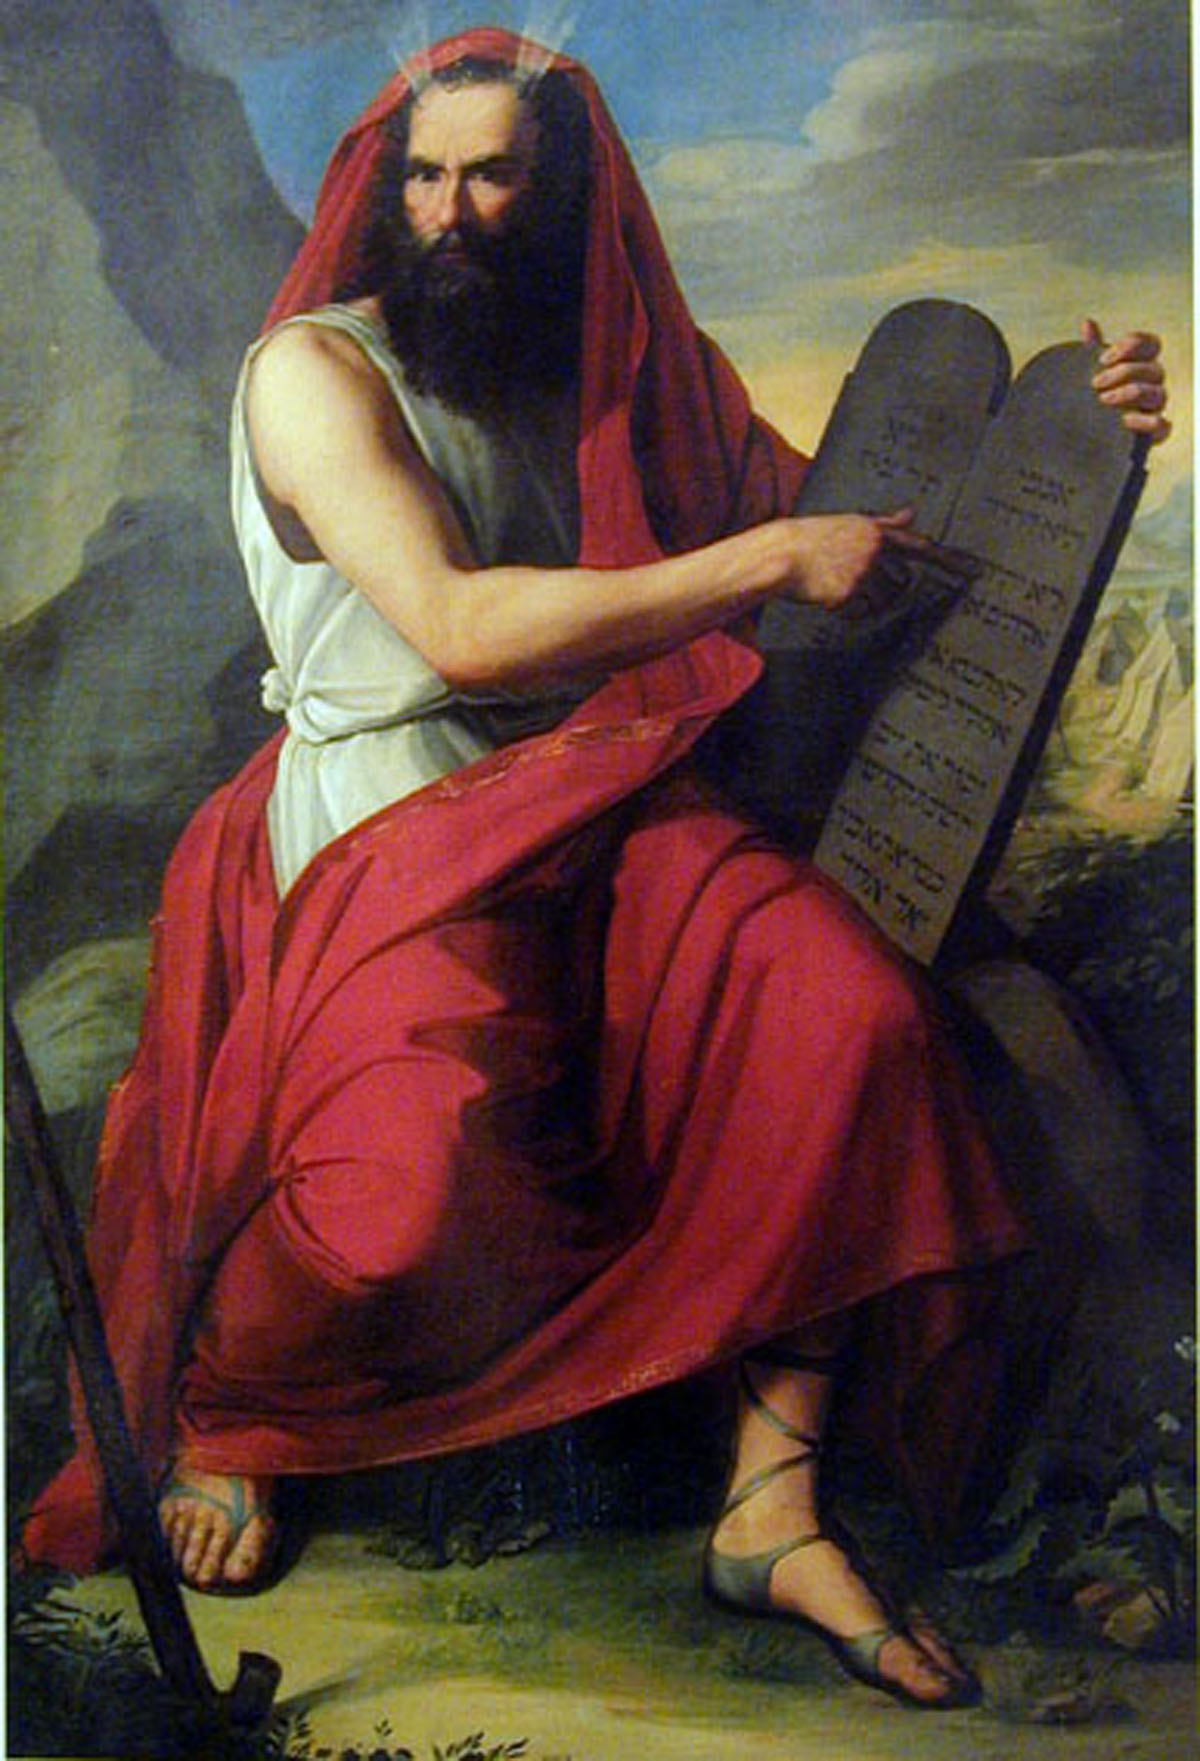 Attributed to Moritz Daniel Oppenheim-moses